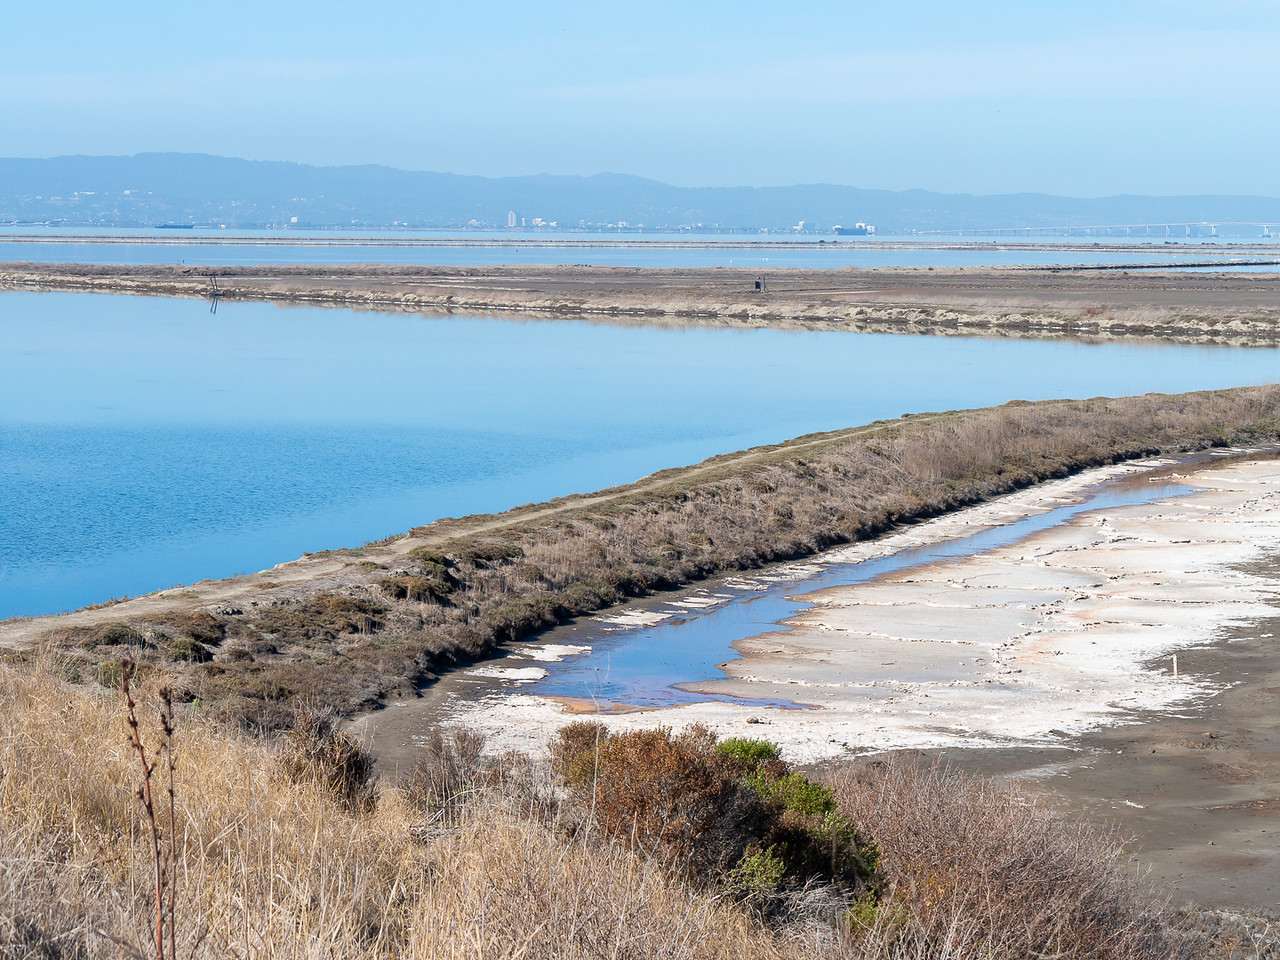 Beyond the hills are dikes separating former salt evaporation ponds.  That's  still salt down there on the mud flats, but it's not collected commercially here any more.  Beyond the last dike -- my route today -- lies the open Bay.  The ponds and dikes are in mostly in the National Wildlife Refuge.